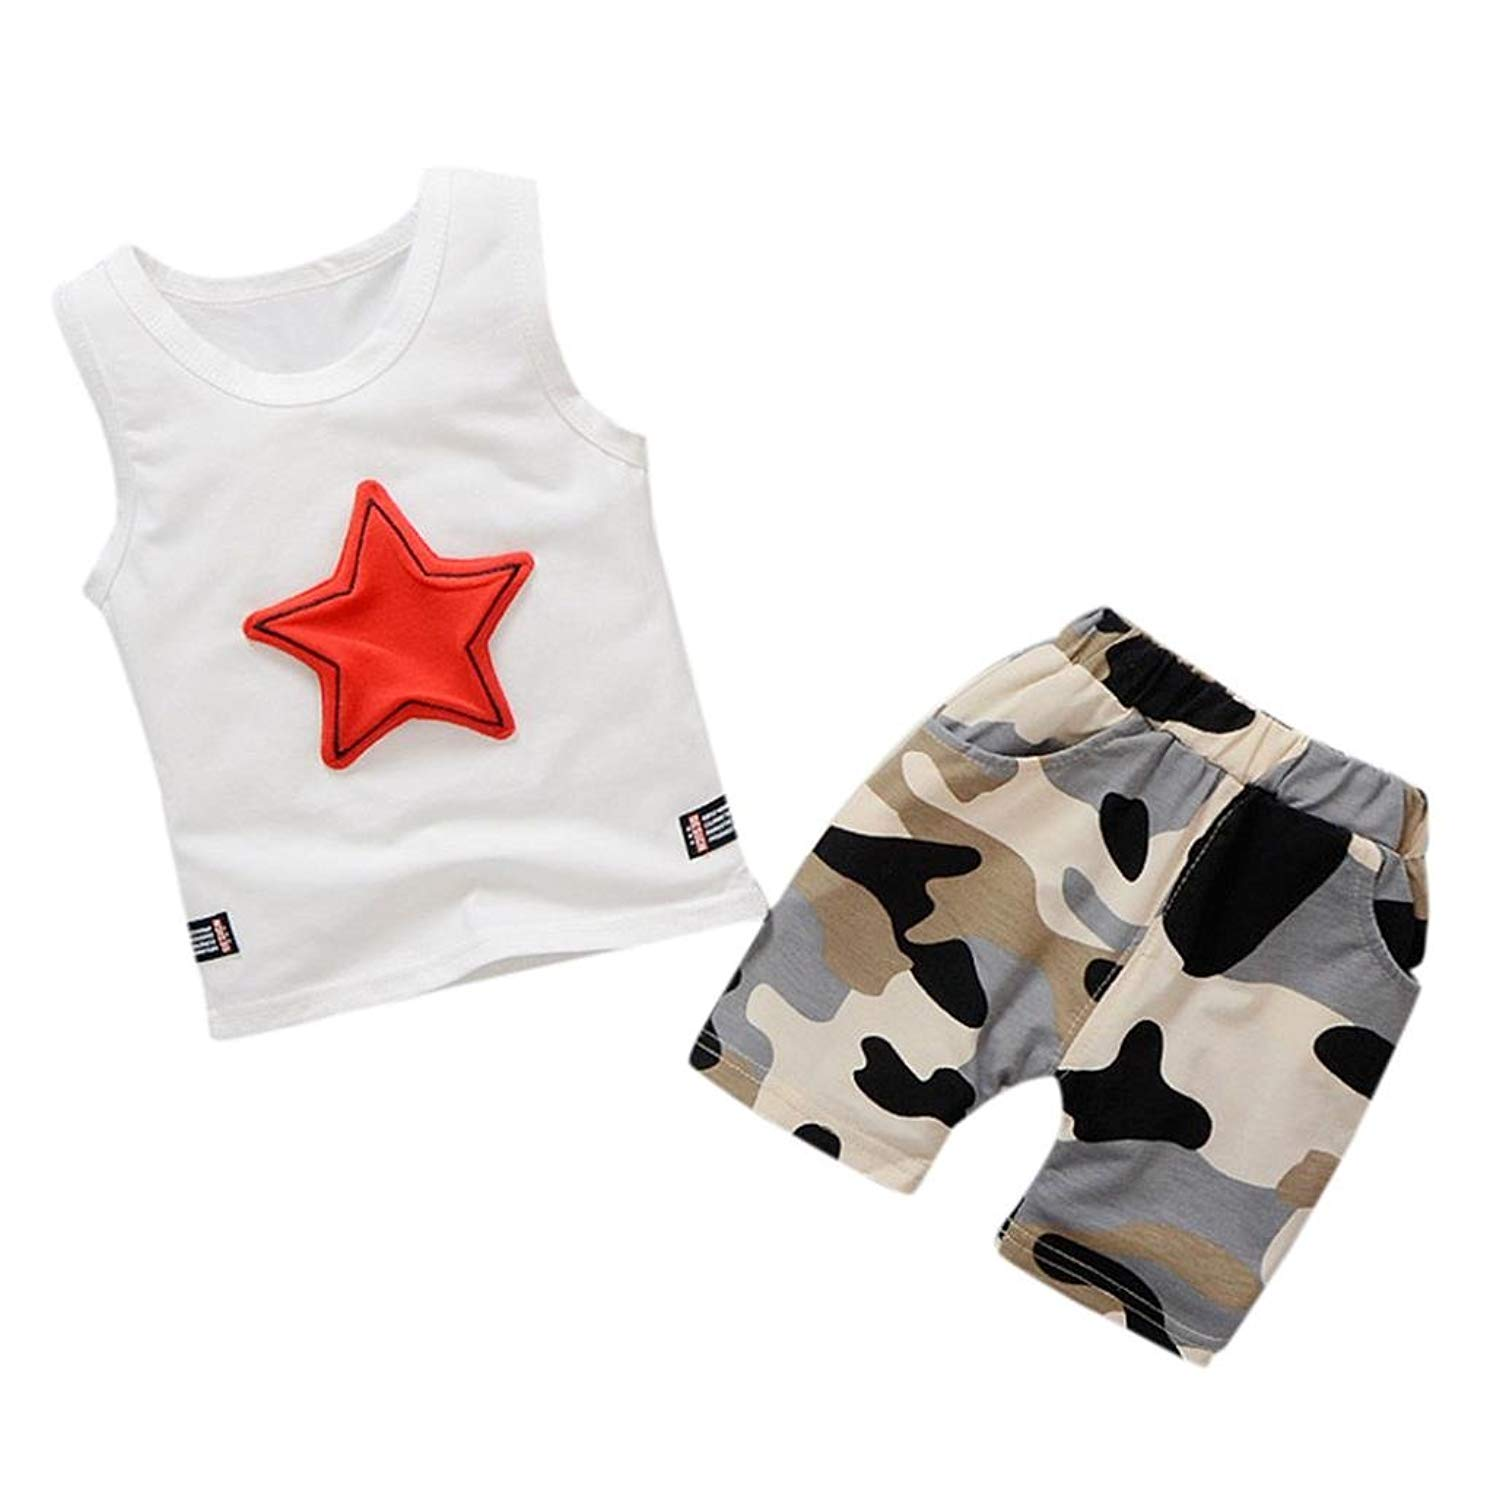 65031d100e7 Get Quotations · SUNBIBE Kids Clothes Baby Boys Cute Sleeveless Vest Tops+Camouflage  Pants Outfits Set 0 Shipping